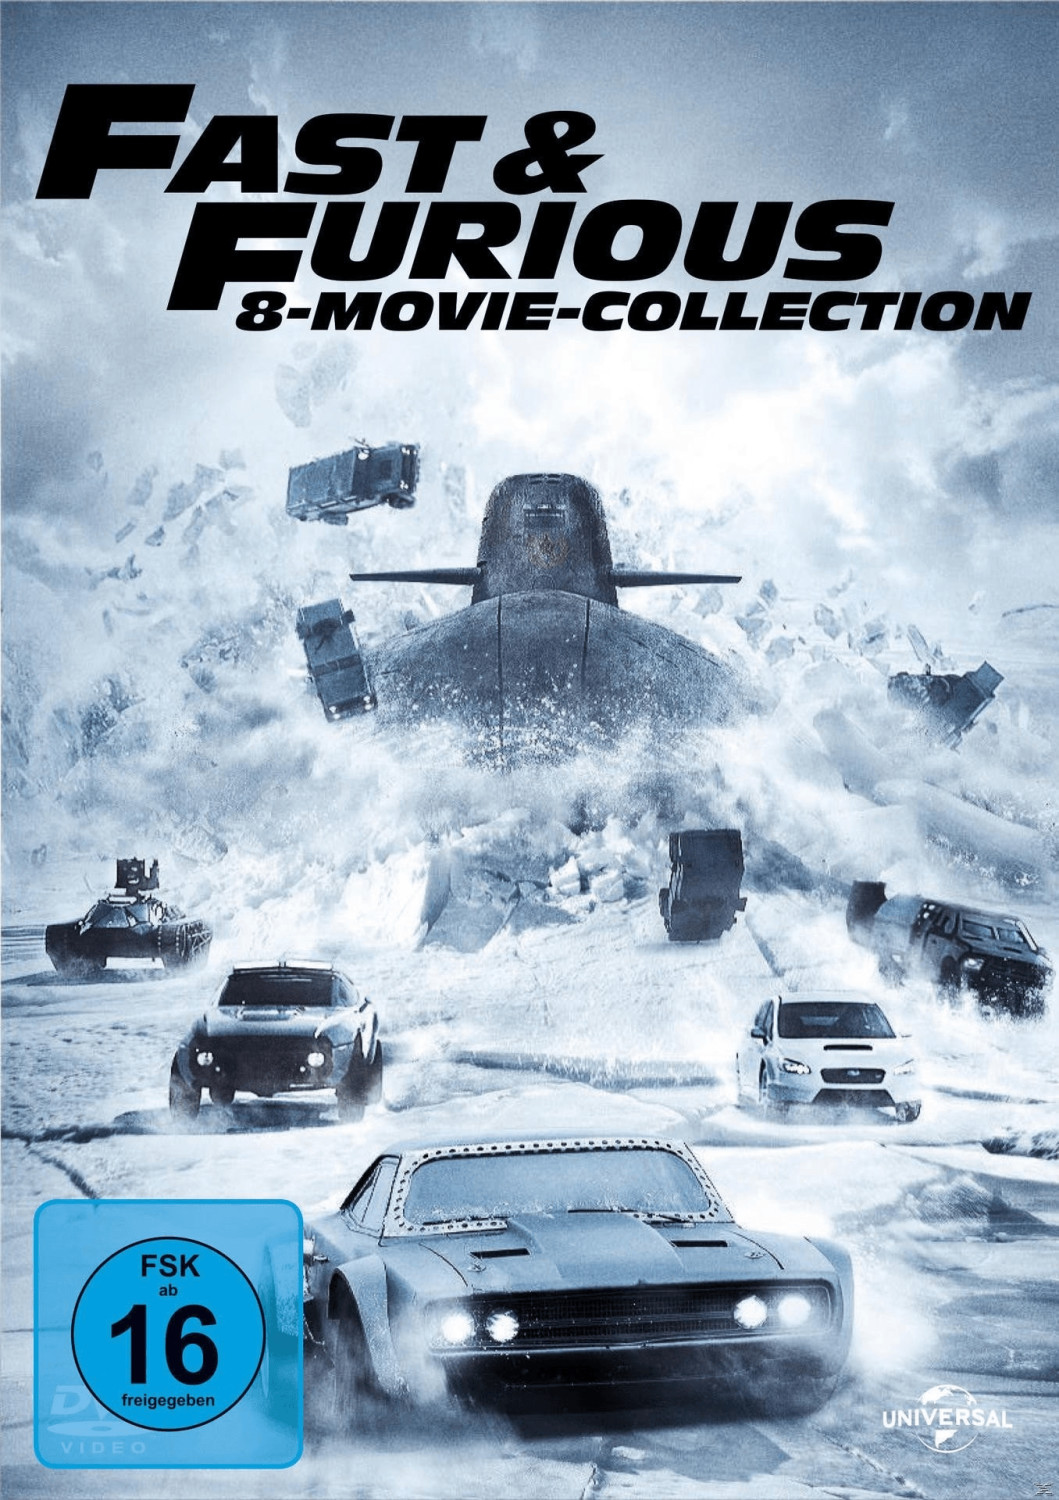 Fast & Furious 8-Movie-Collection [DVD]